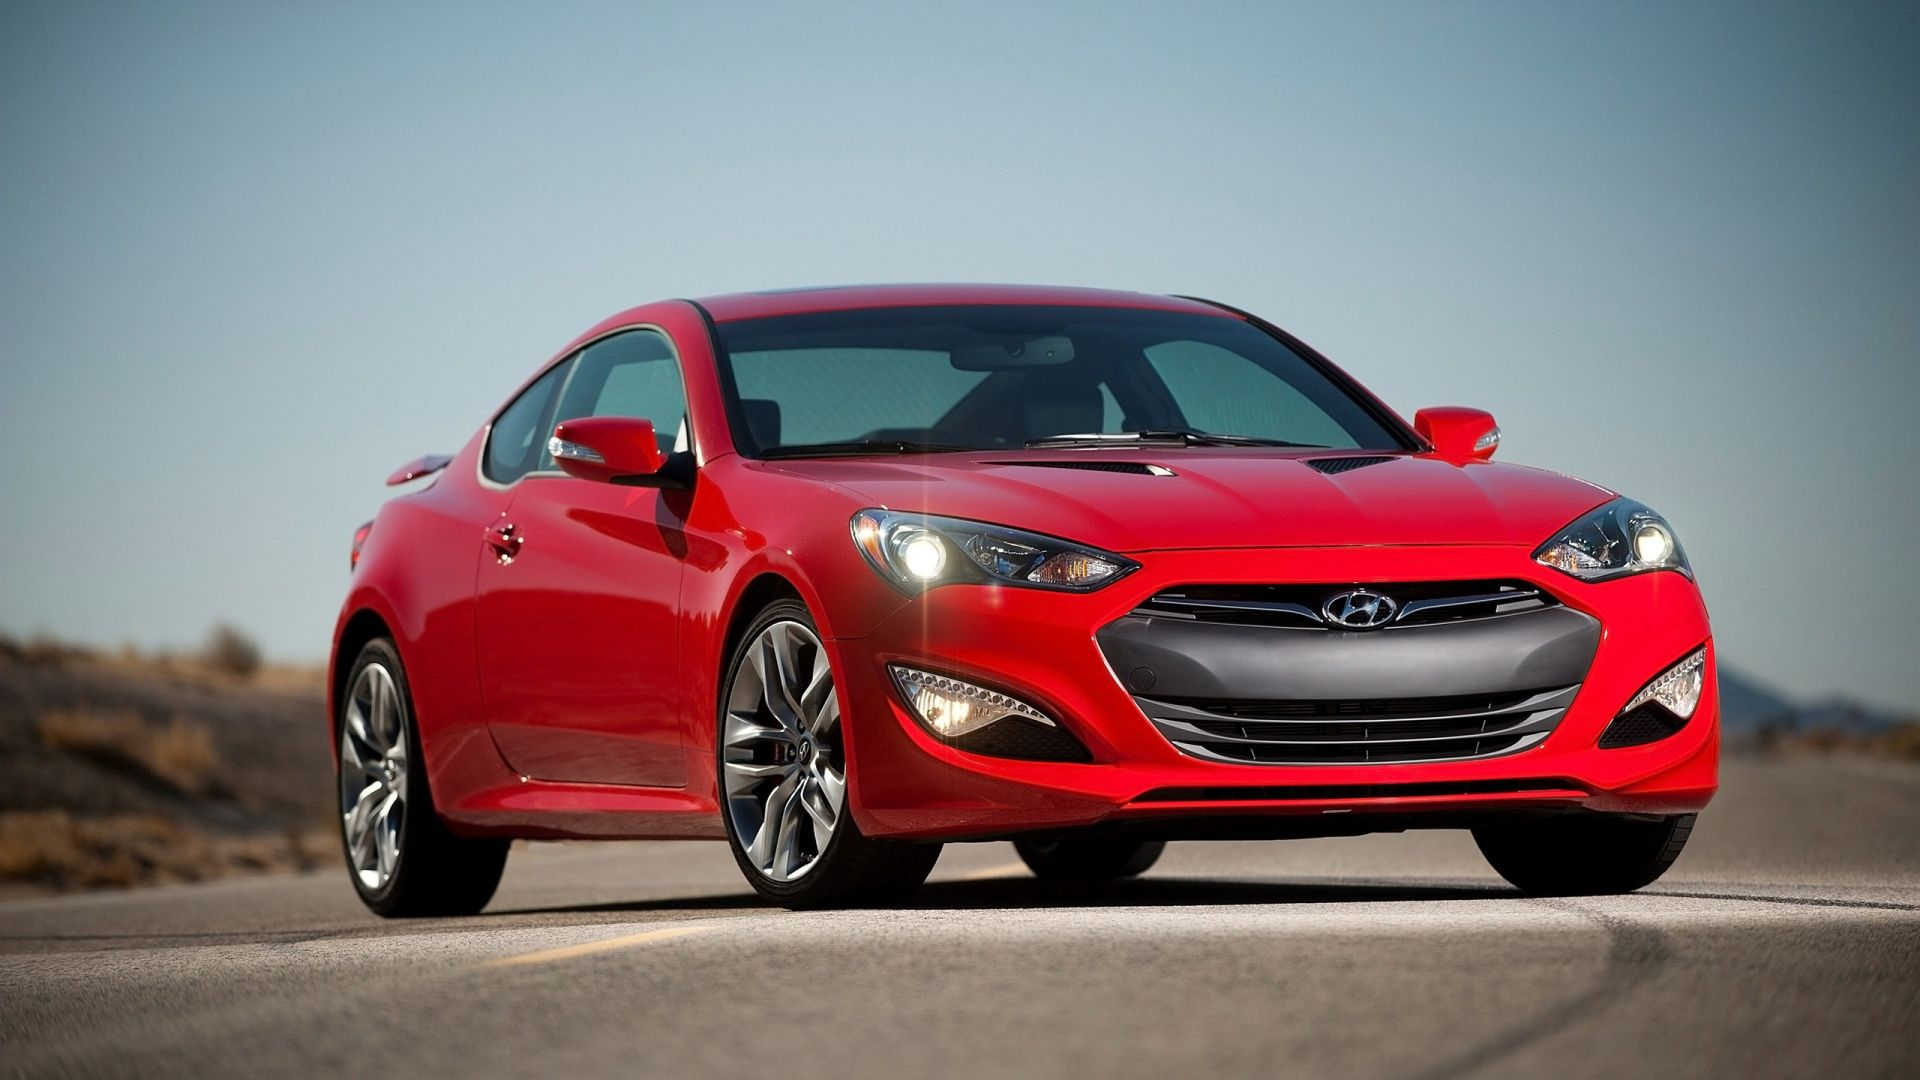 gt test hyundai ec s editor editors gencoupe reviews driving choice genesis coupe road